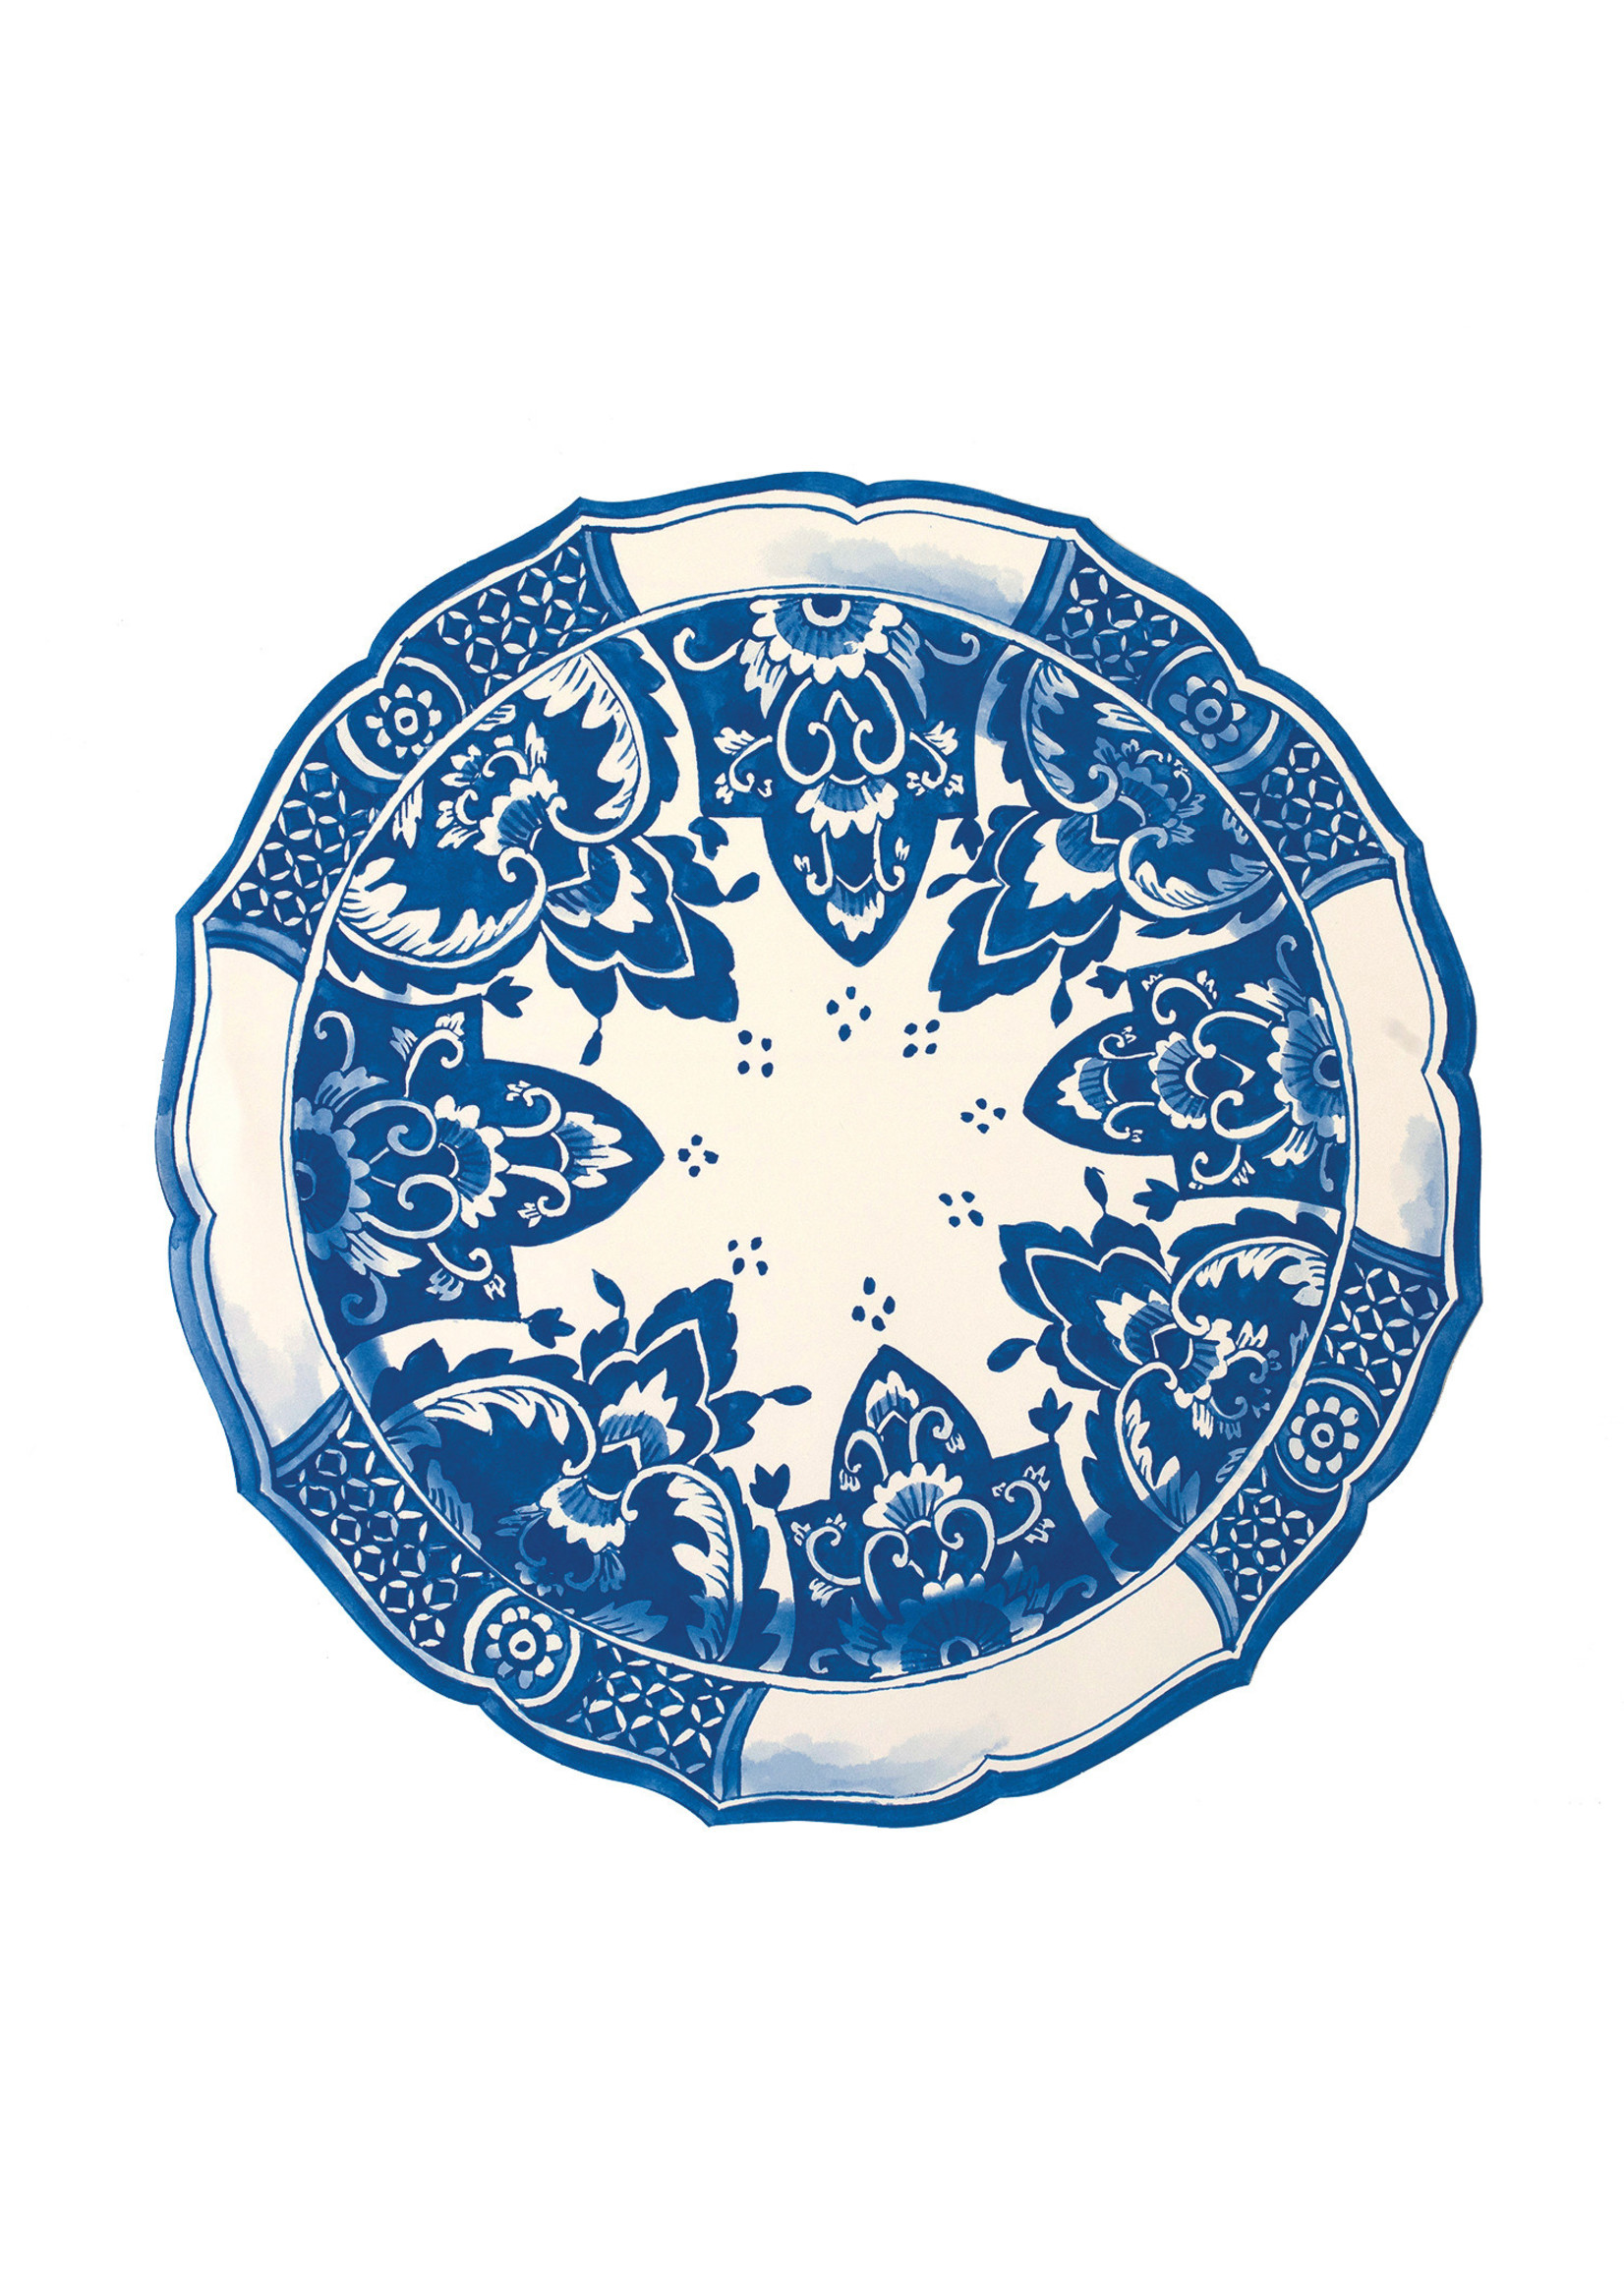 Hester & Cook Paper Placemats - China Blue (12 sheets)